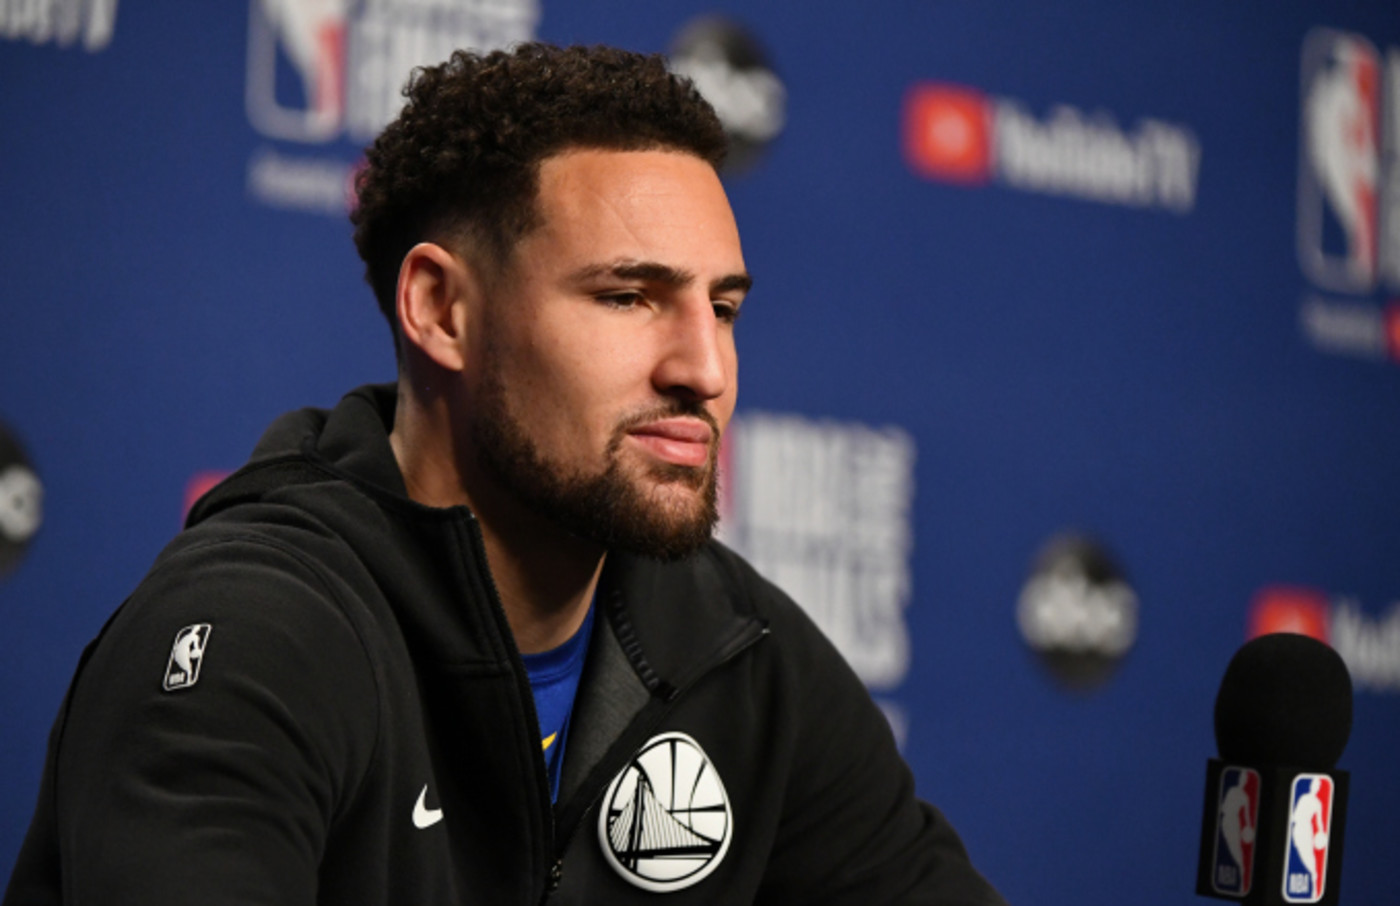 Klay Thompson #11 of the Golden State Warriors